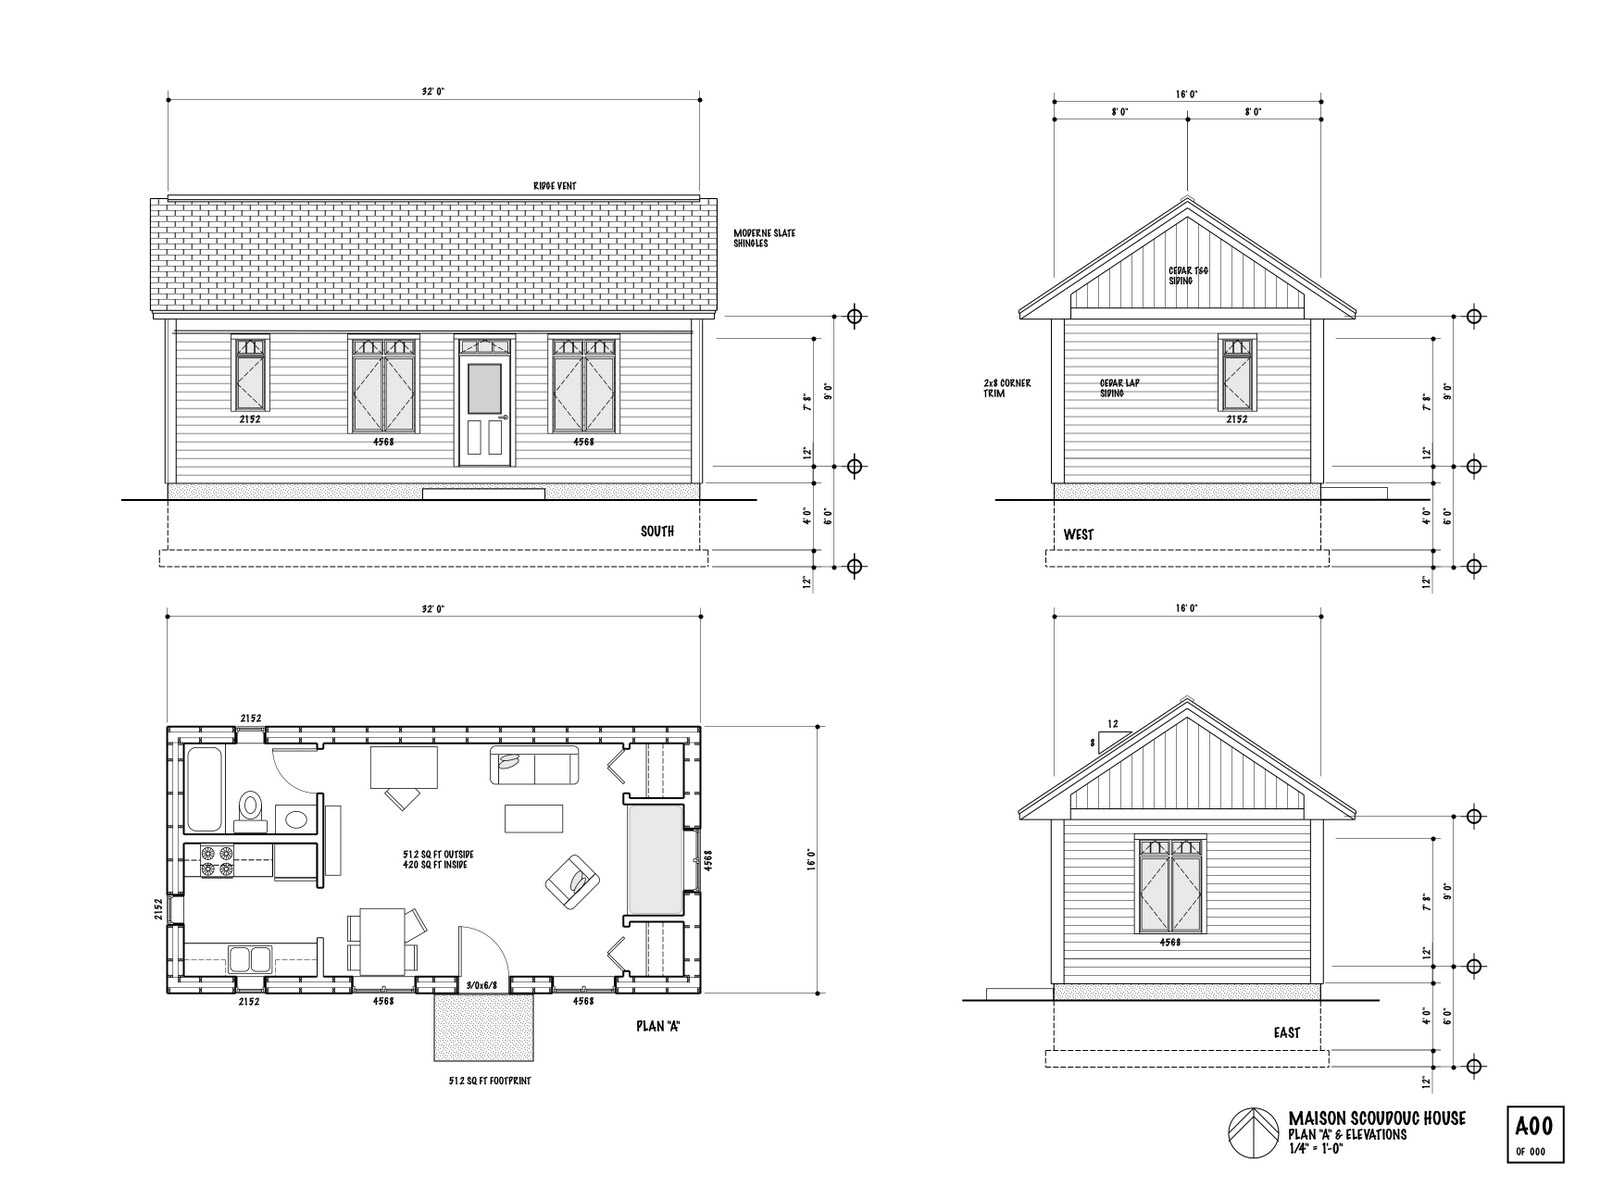 Nb superinsulated house maisons scoudouc houses for Plans architecturaux des maisons